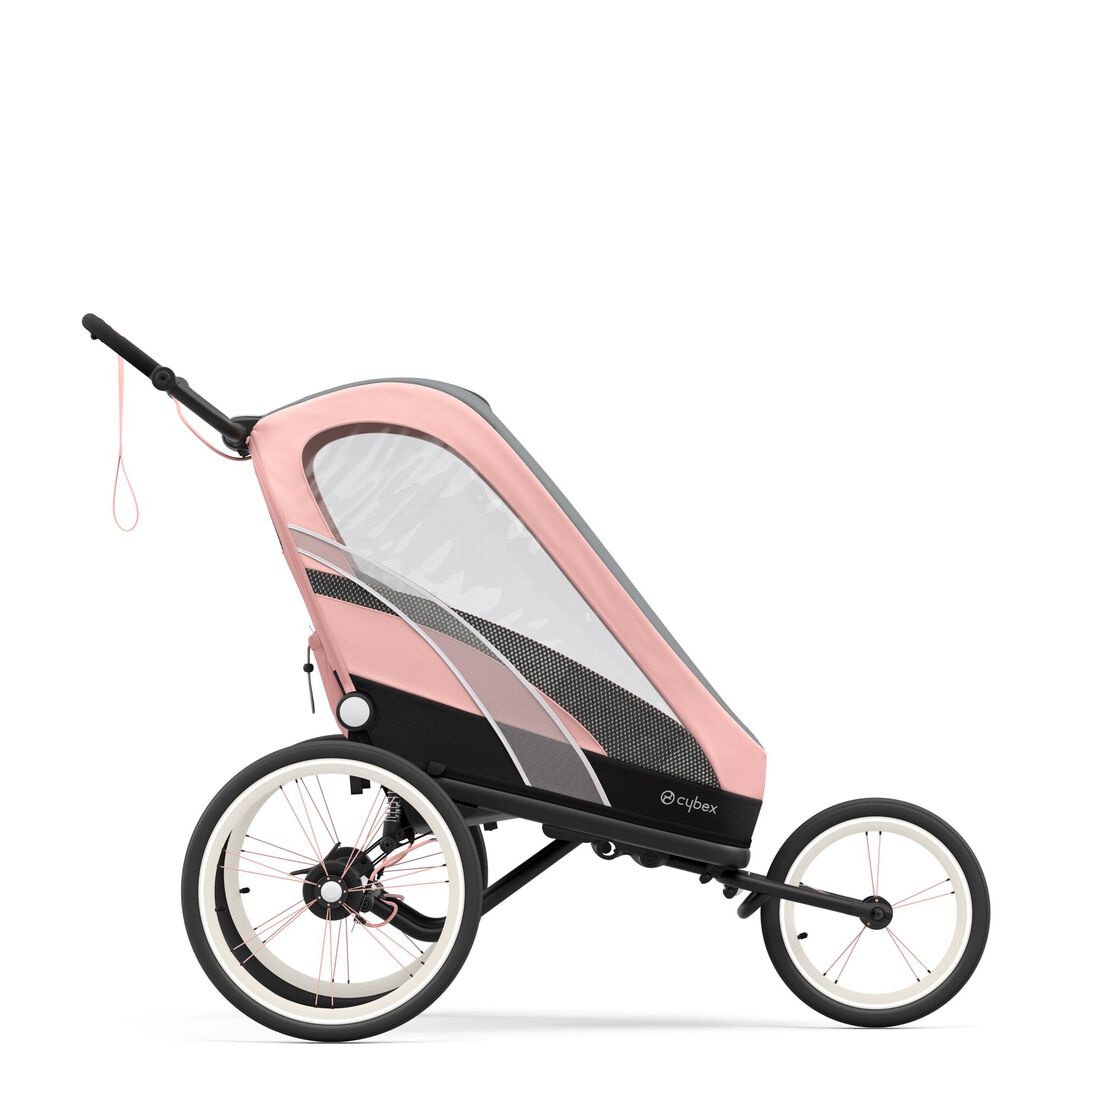 CYBEX Zeno Frame - Black With Pink Details in Black With Pink Details large image number 4